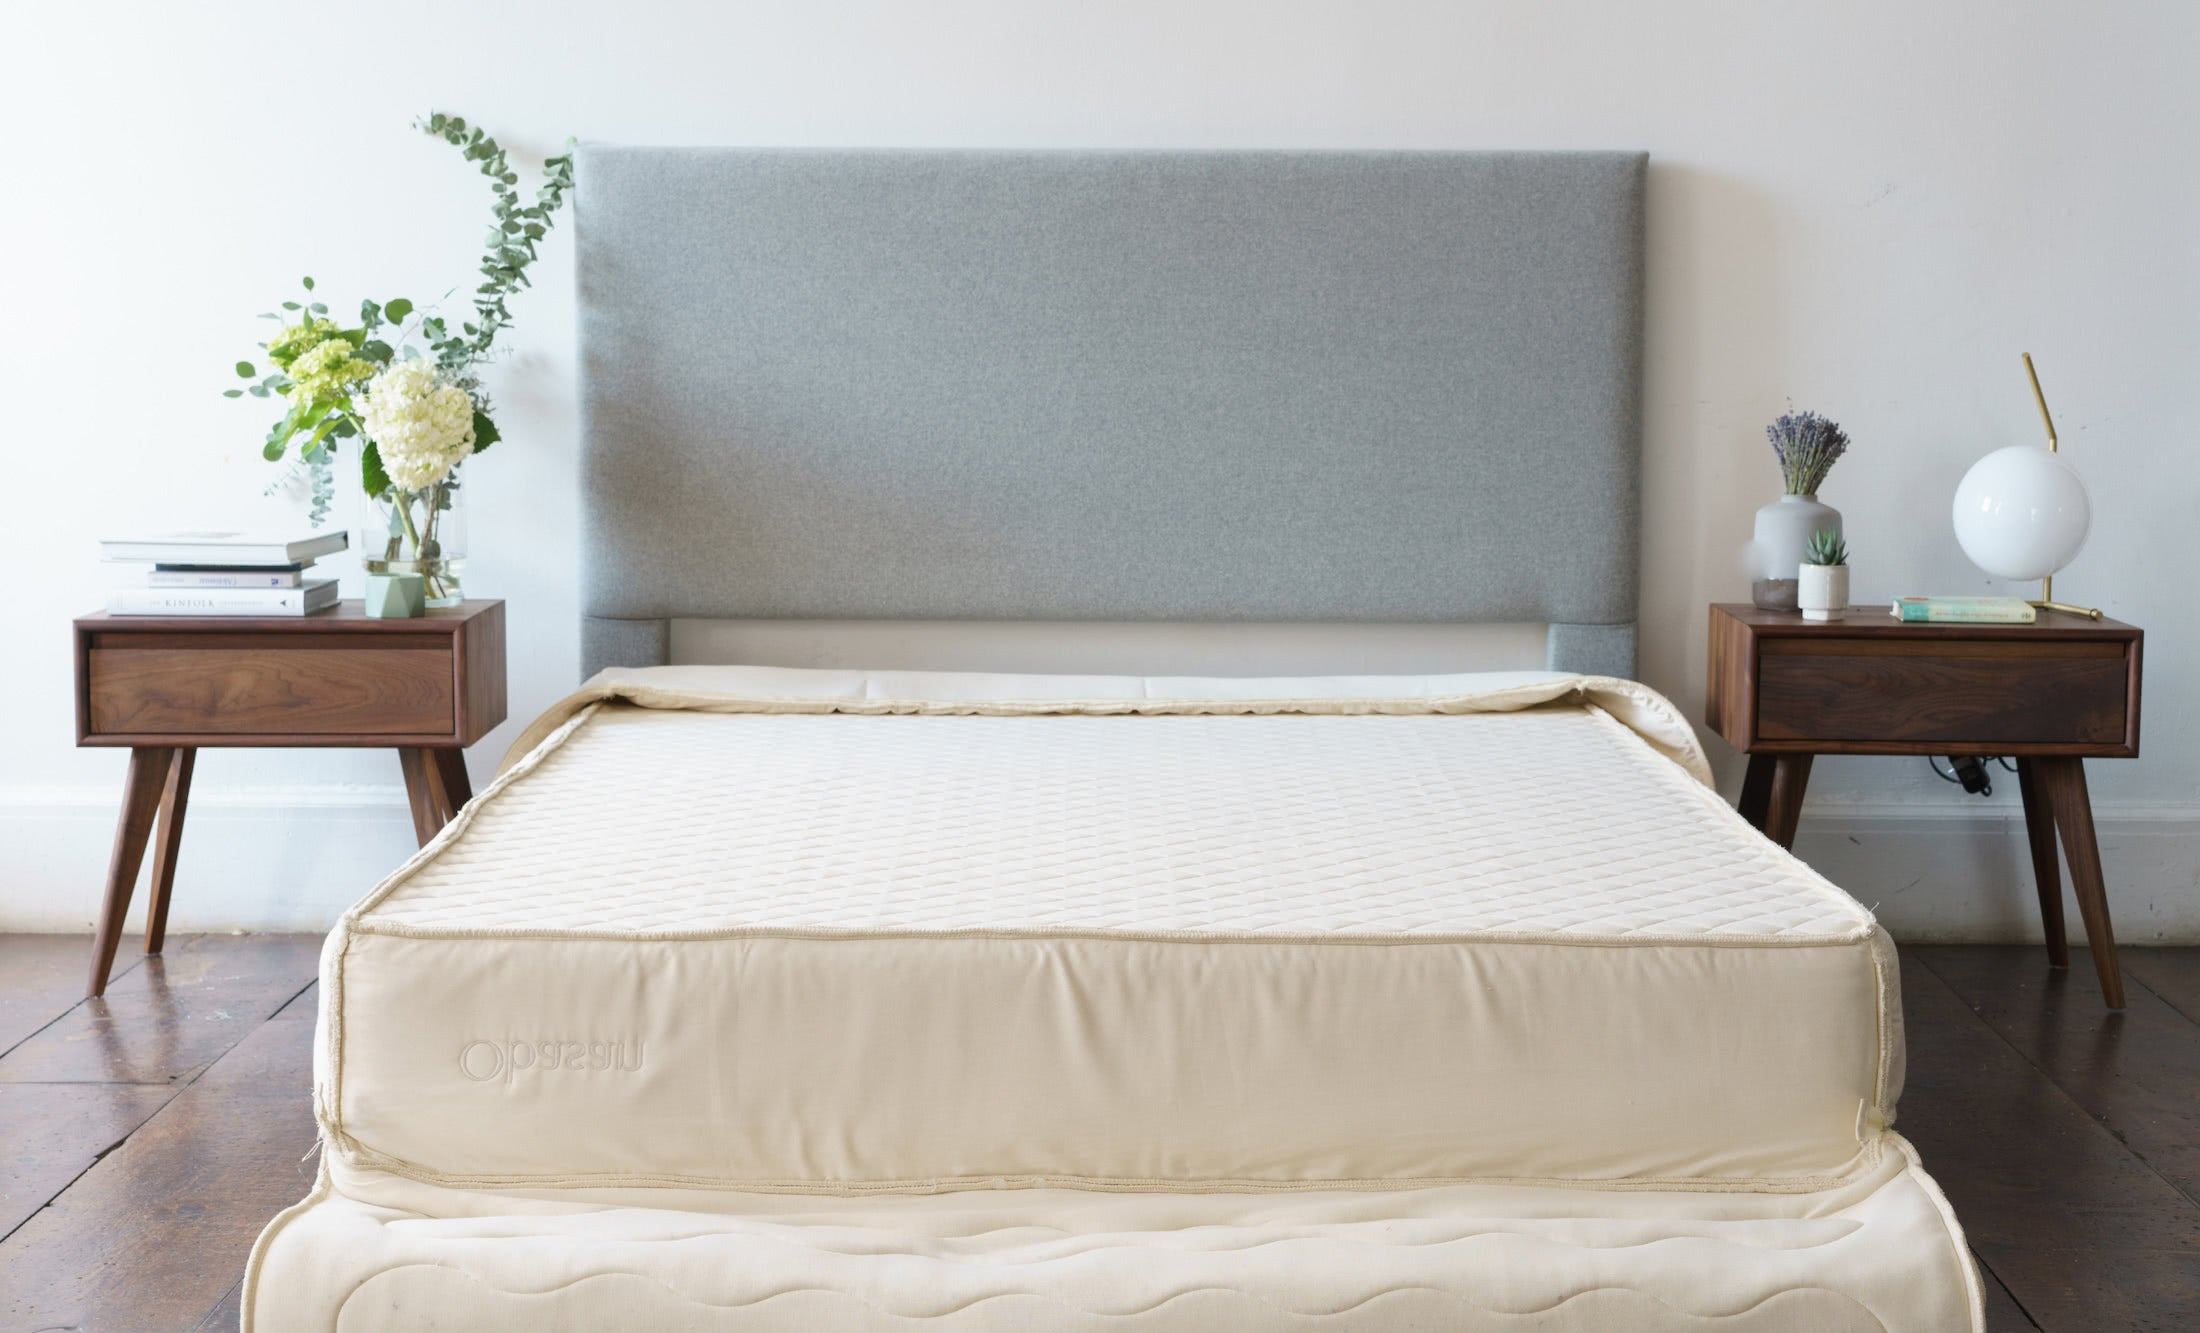 An Obasan bed in a stylish room